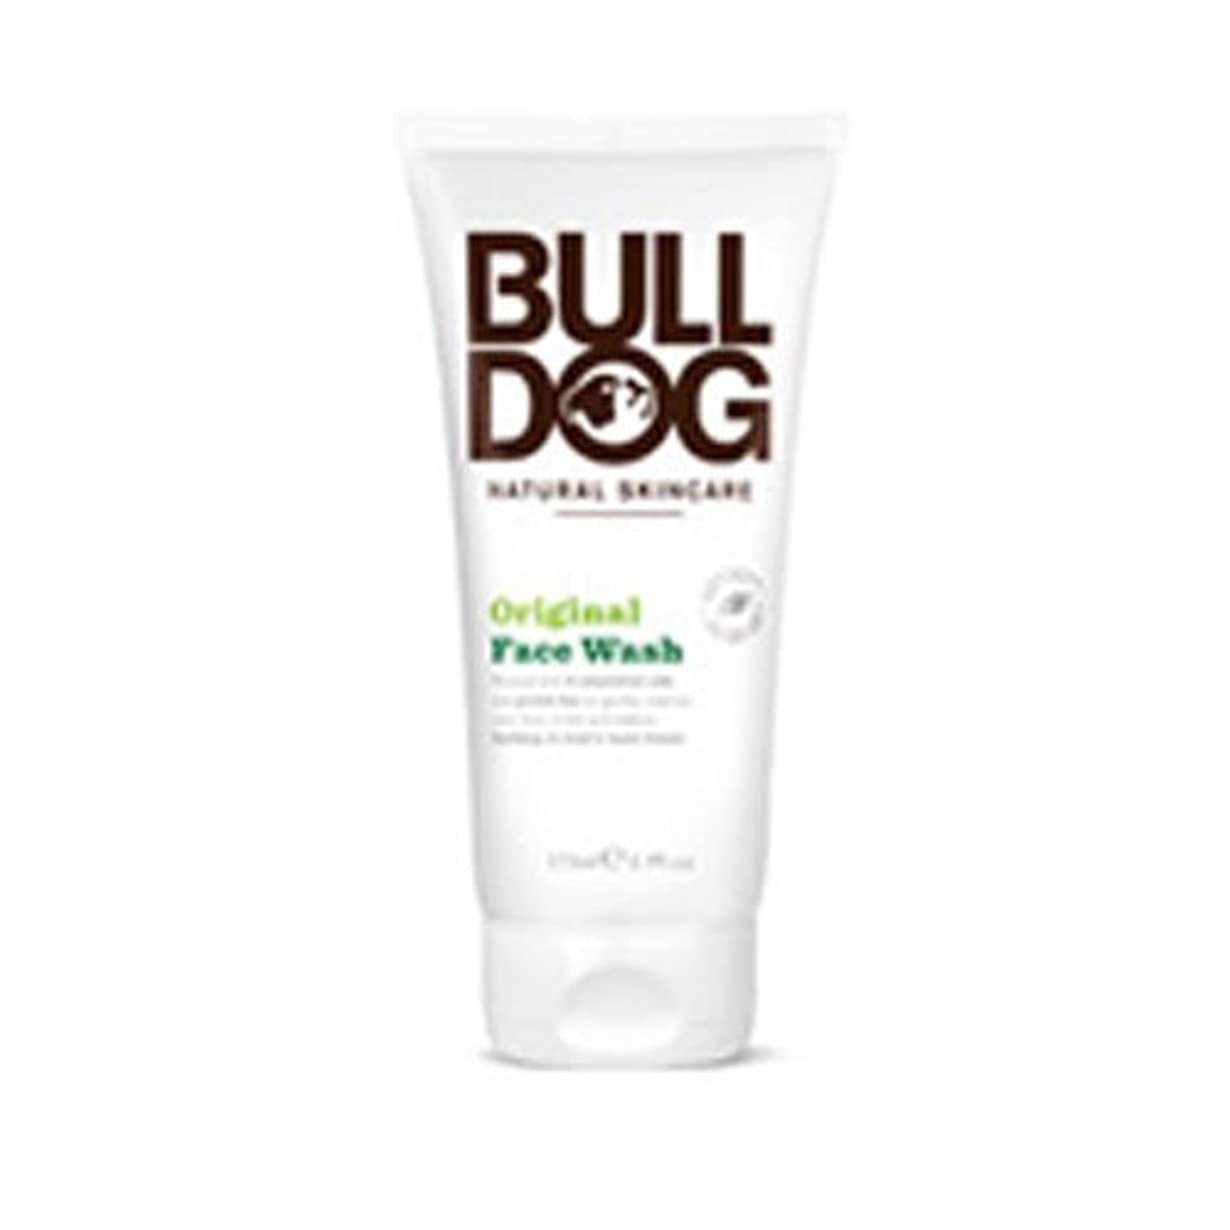 自治的スピーカー未知の海外直送品Original Face Wash, 5.9 oz by Bulldog Natural Skincare